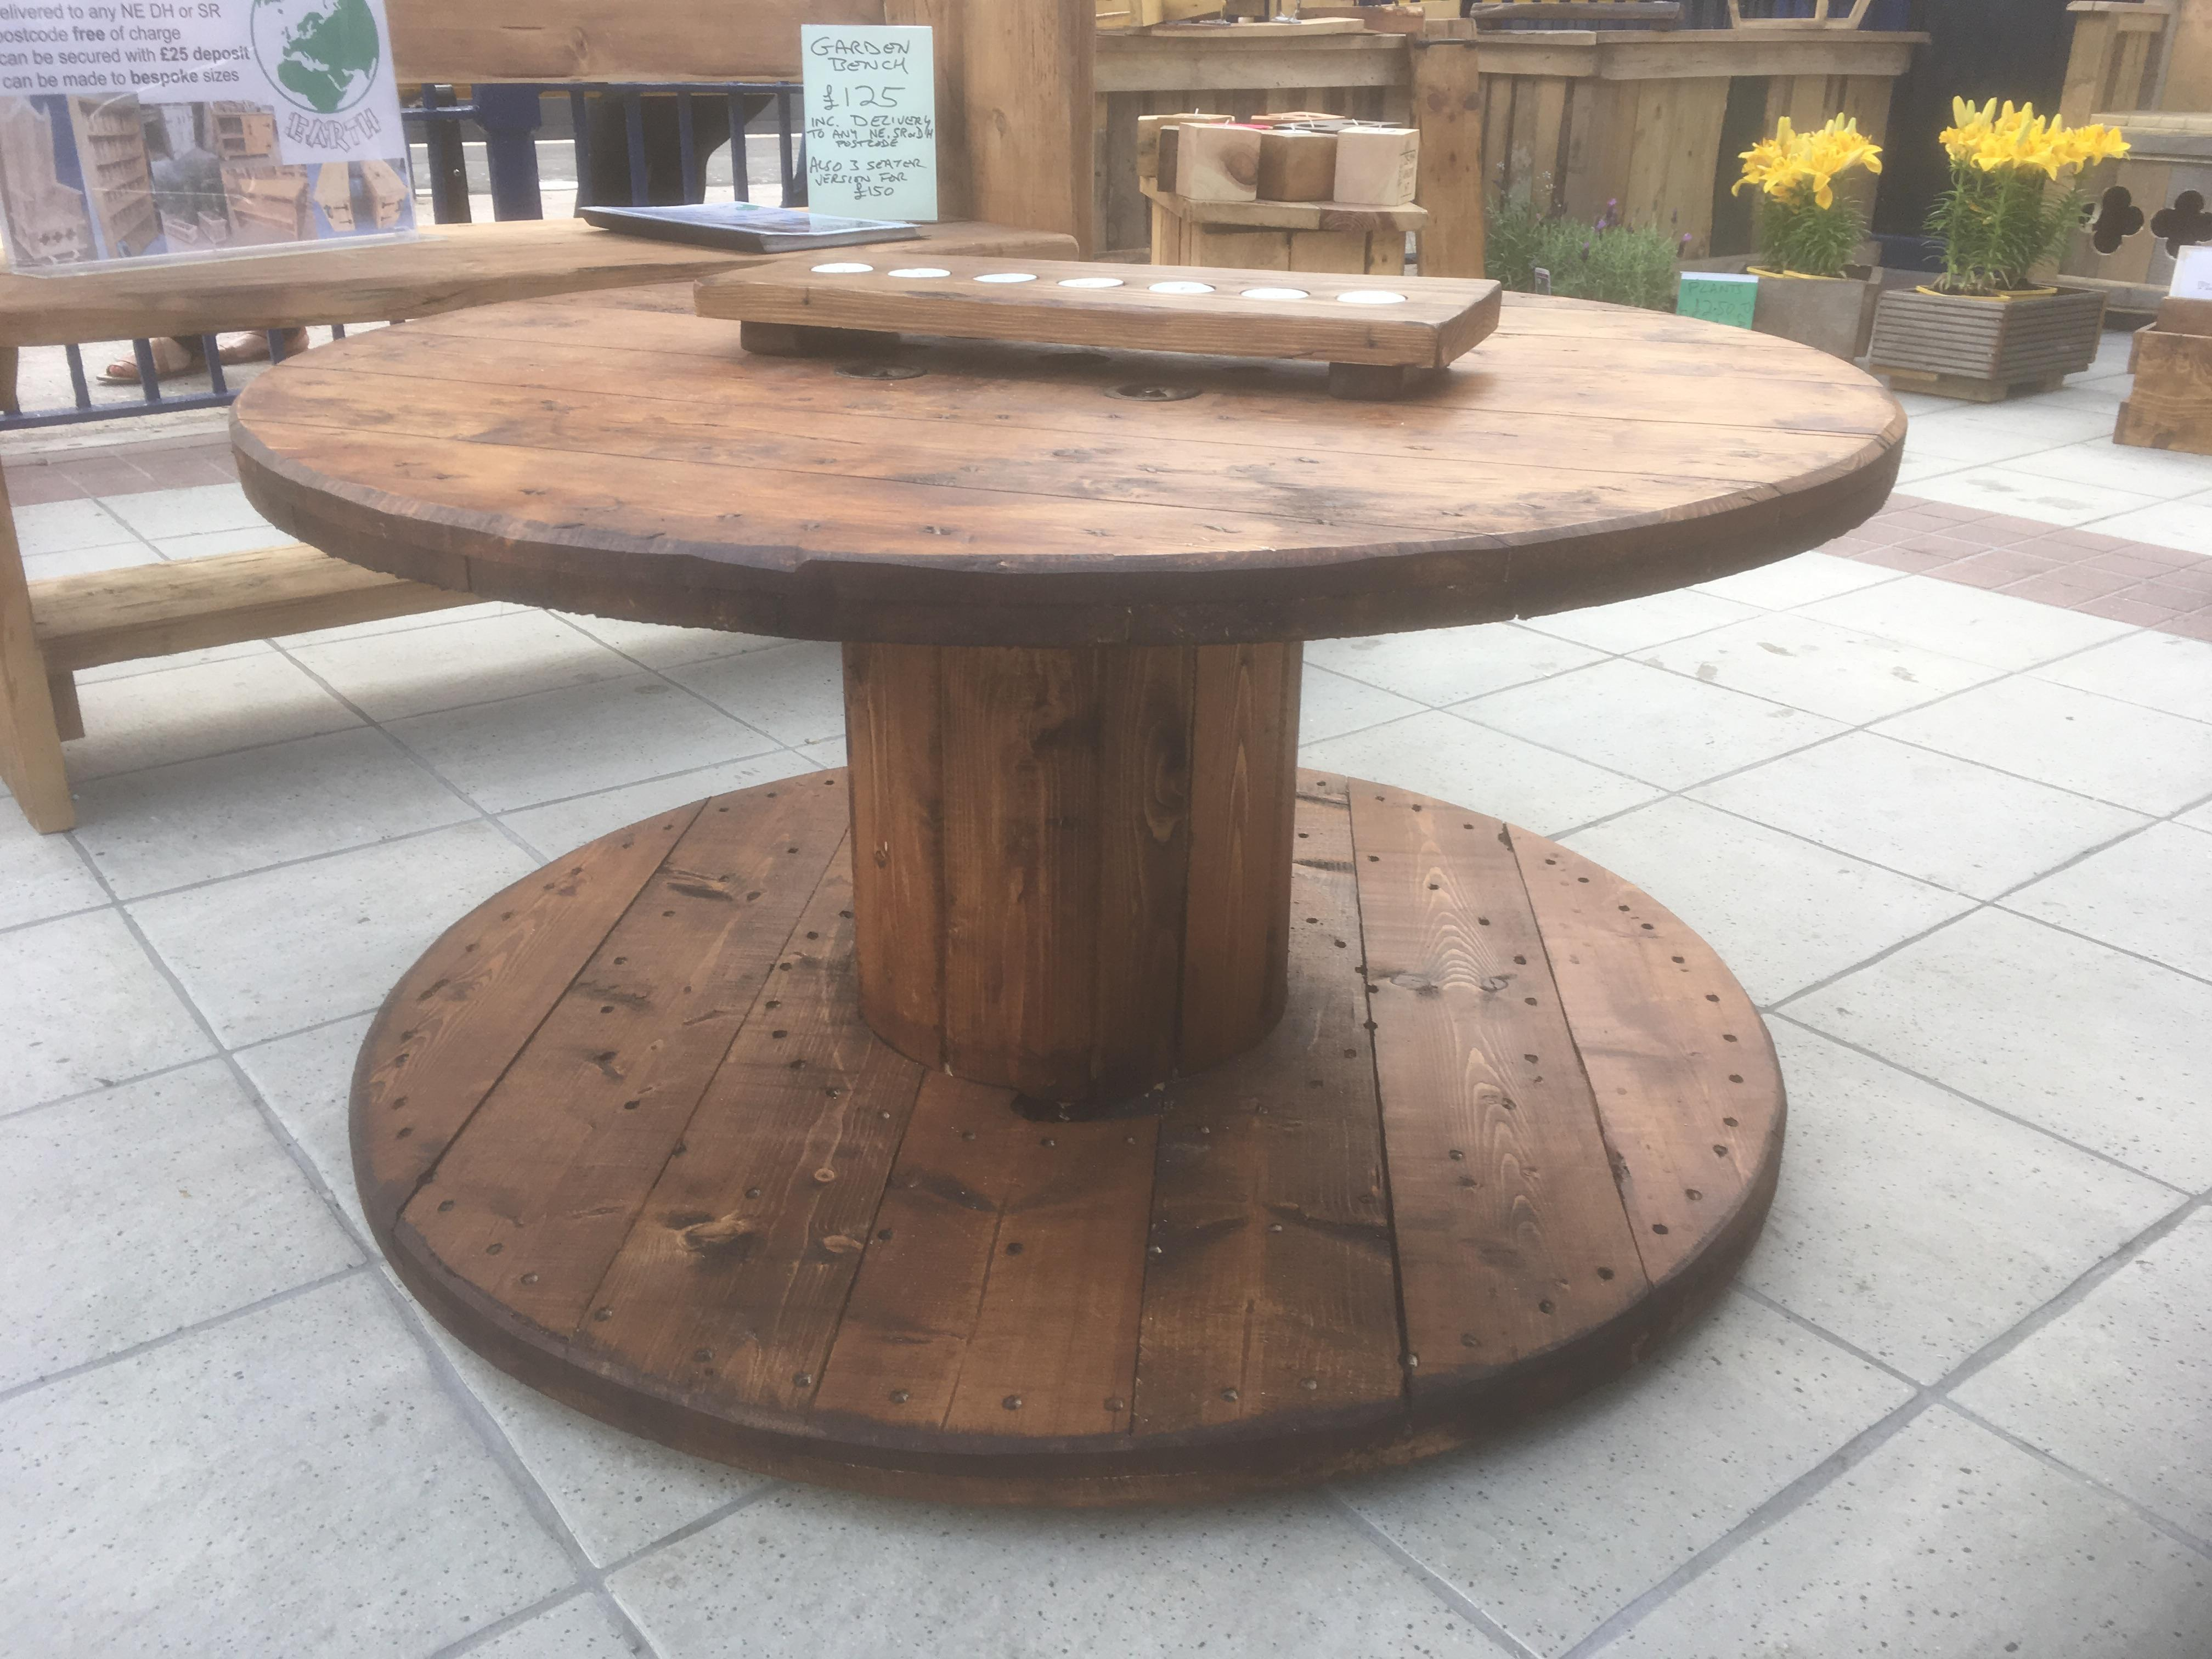 exciting cable spool kitchen table | Cable Reel Tables